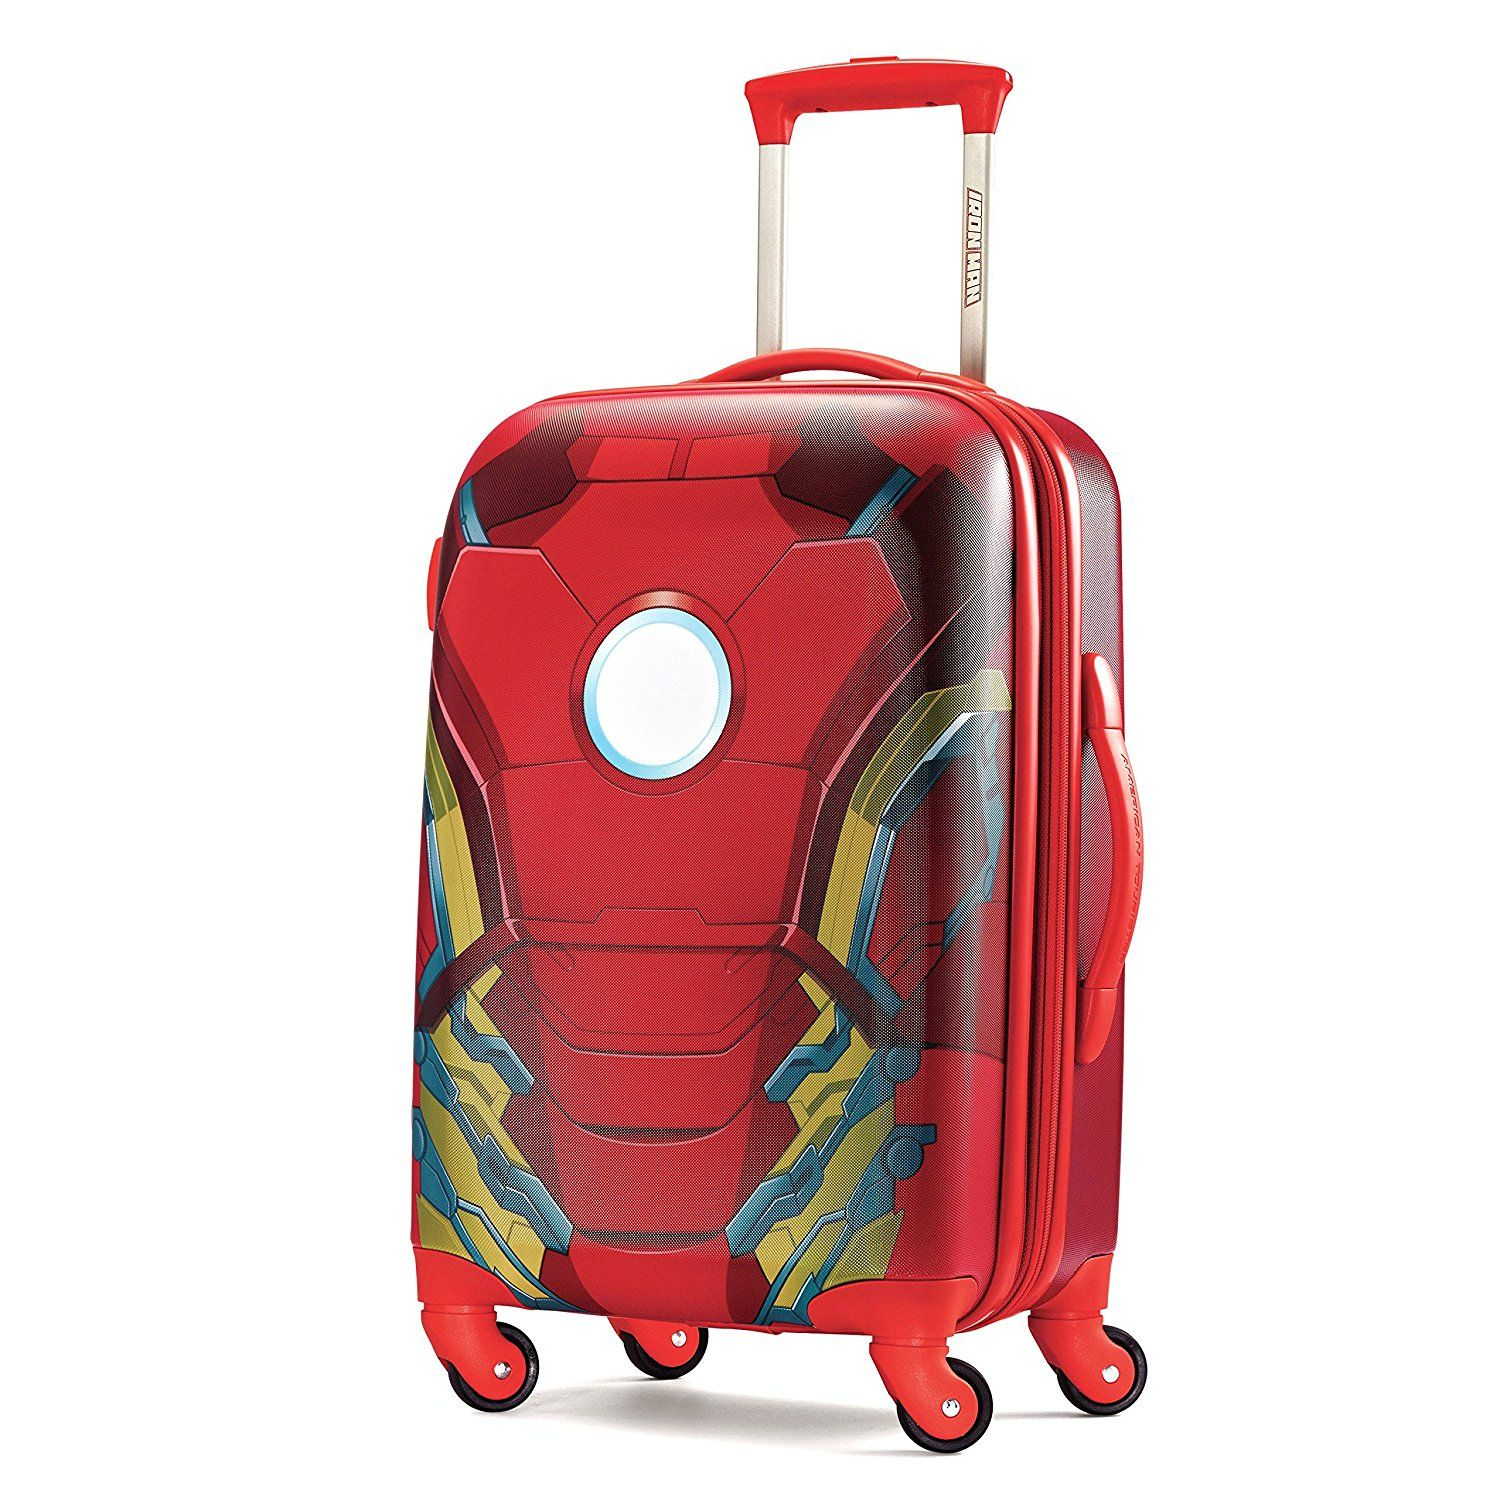 American Tourister Marvel 21 Inch Spinner Carry On Luggage Iron Man You Can Get More Details By Clicking On The Iron Man American Tourister Carry On Luggage